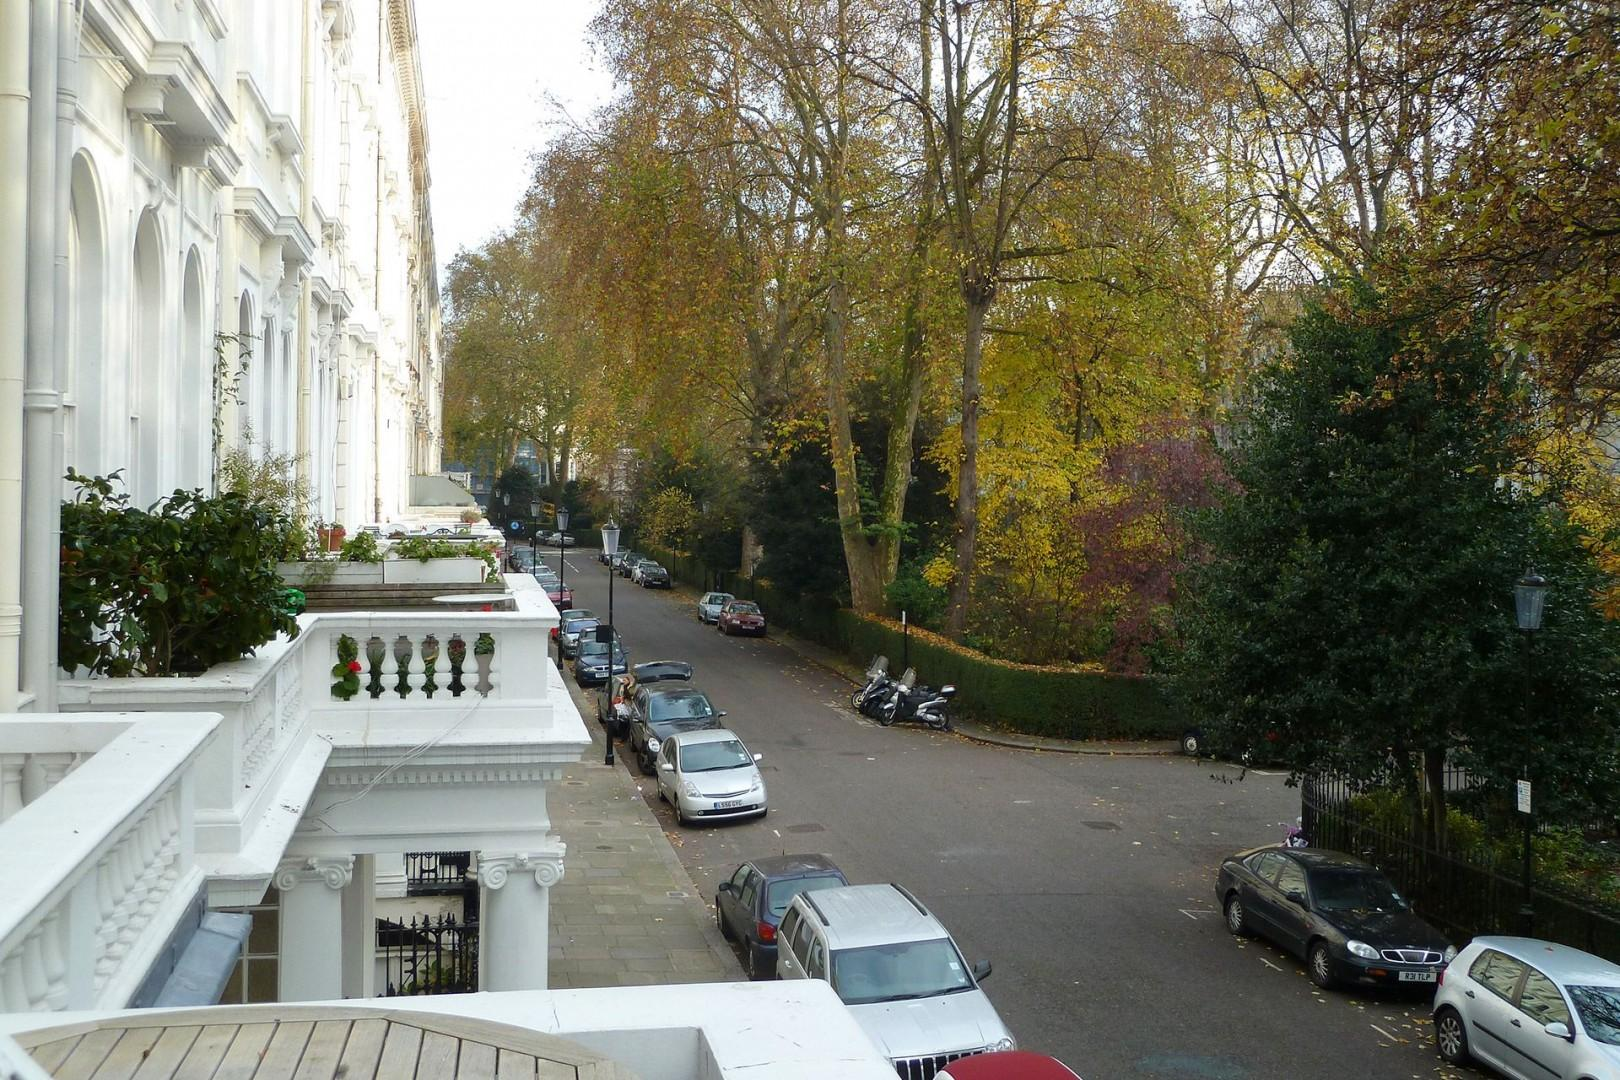 View down the charming street from the balcony